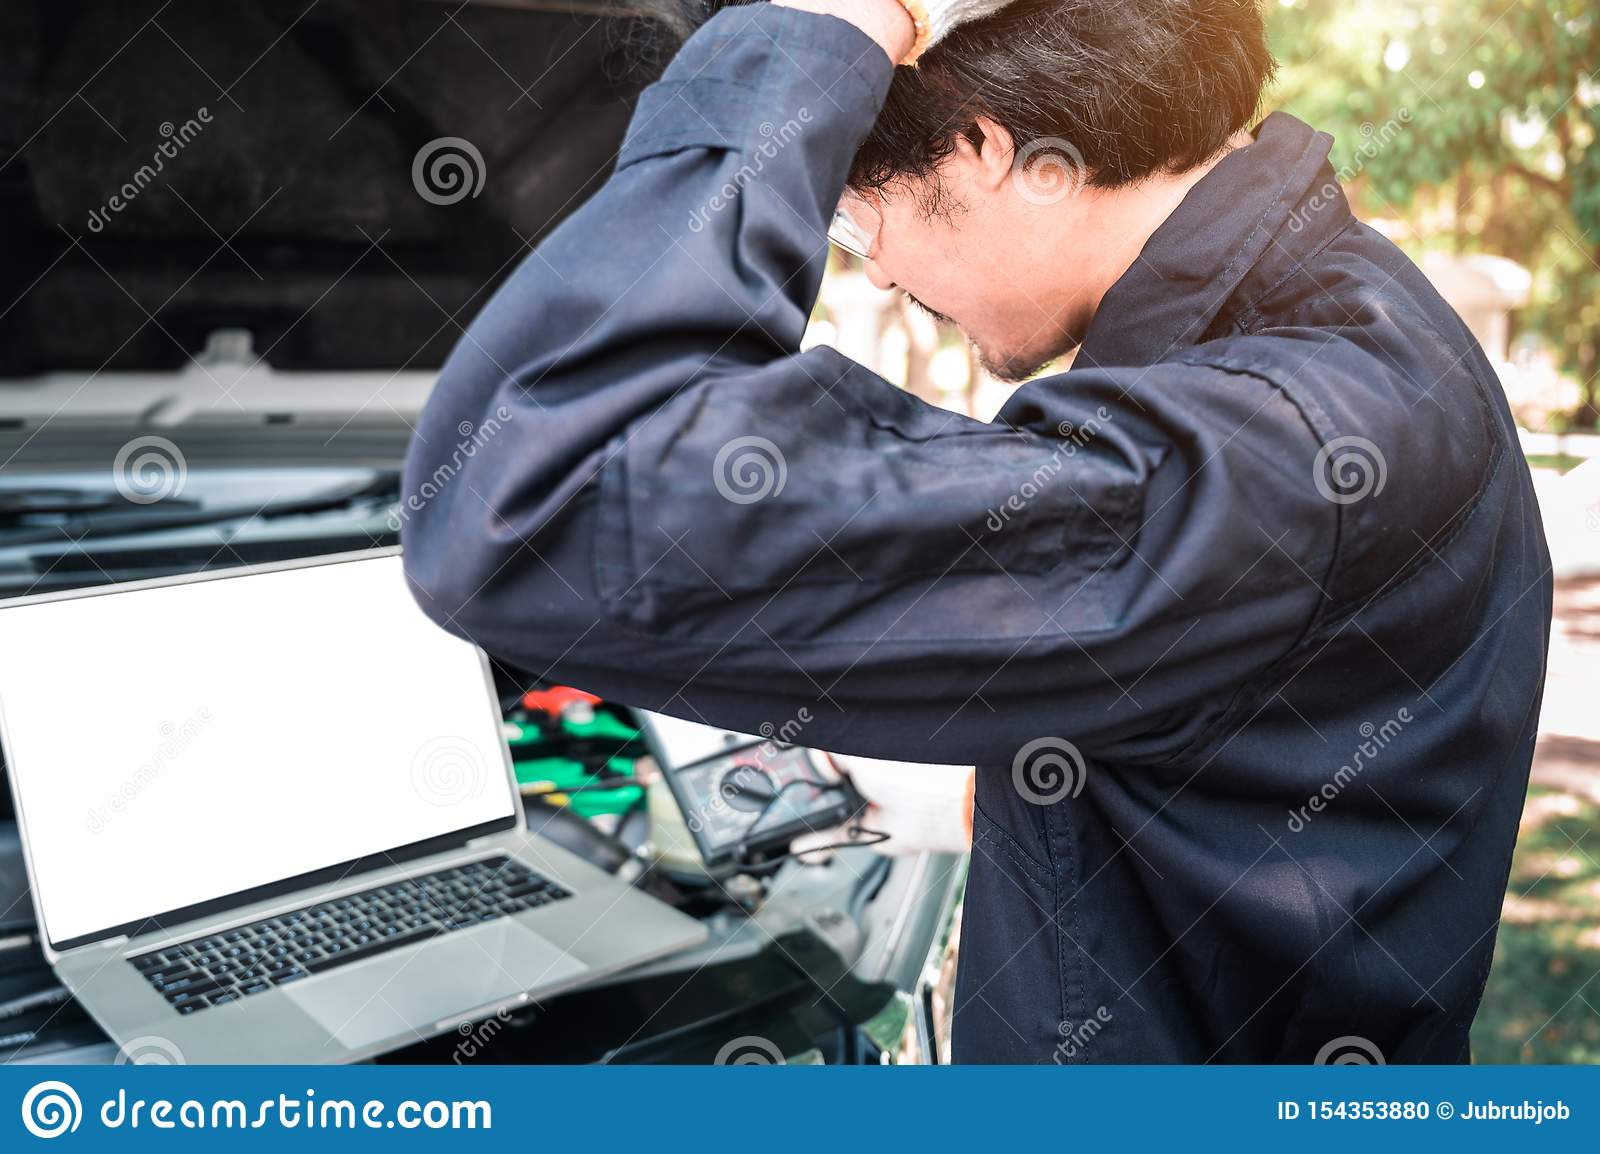 Mechanic Using Laptop While Examining Car Engine, pointing in blank screen